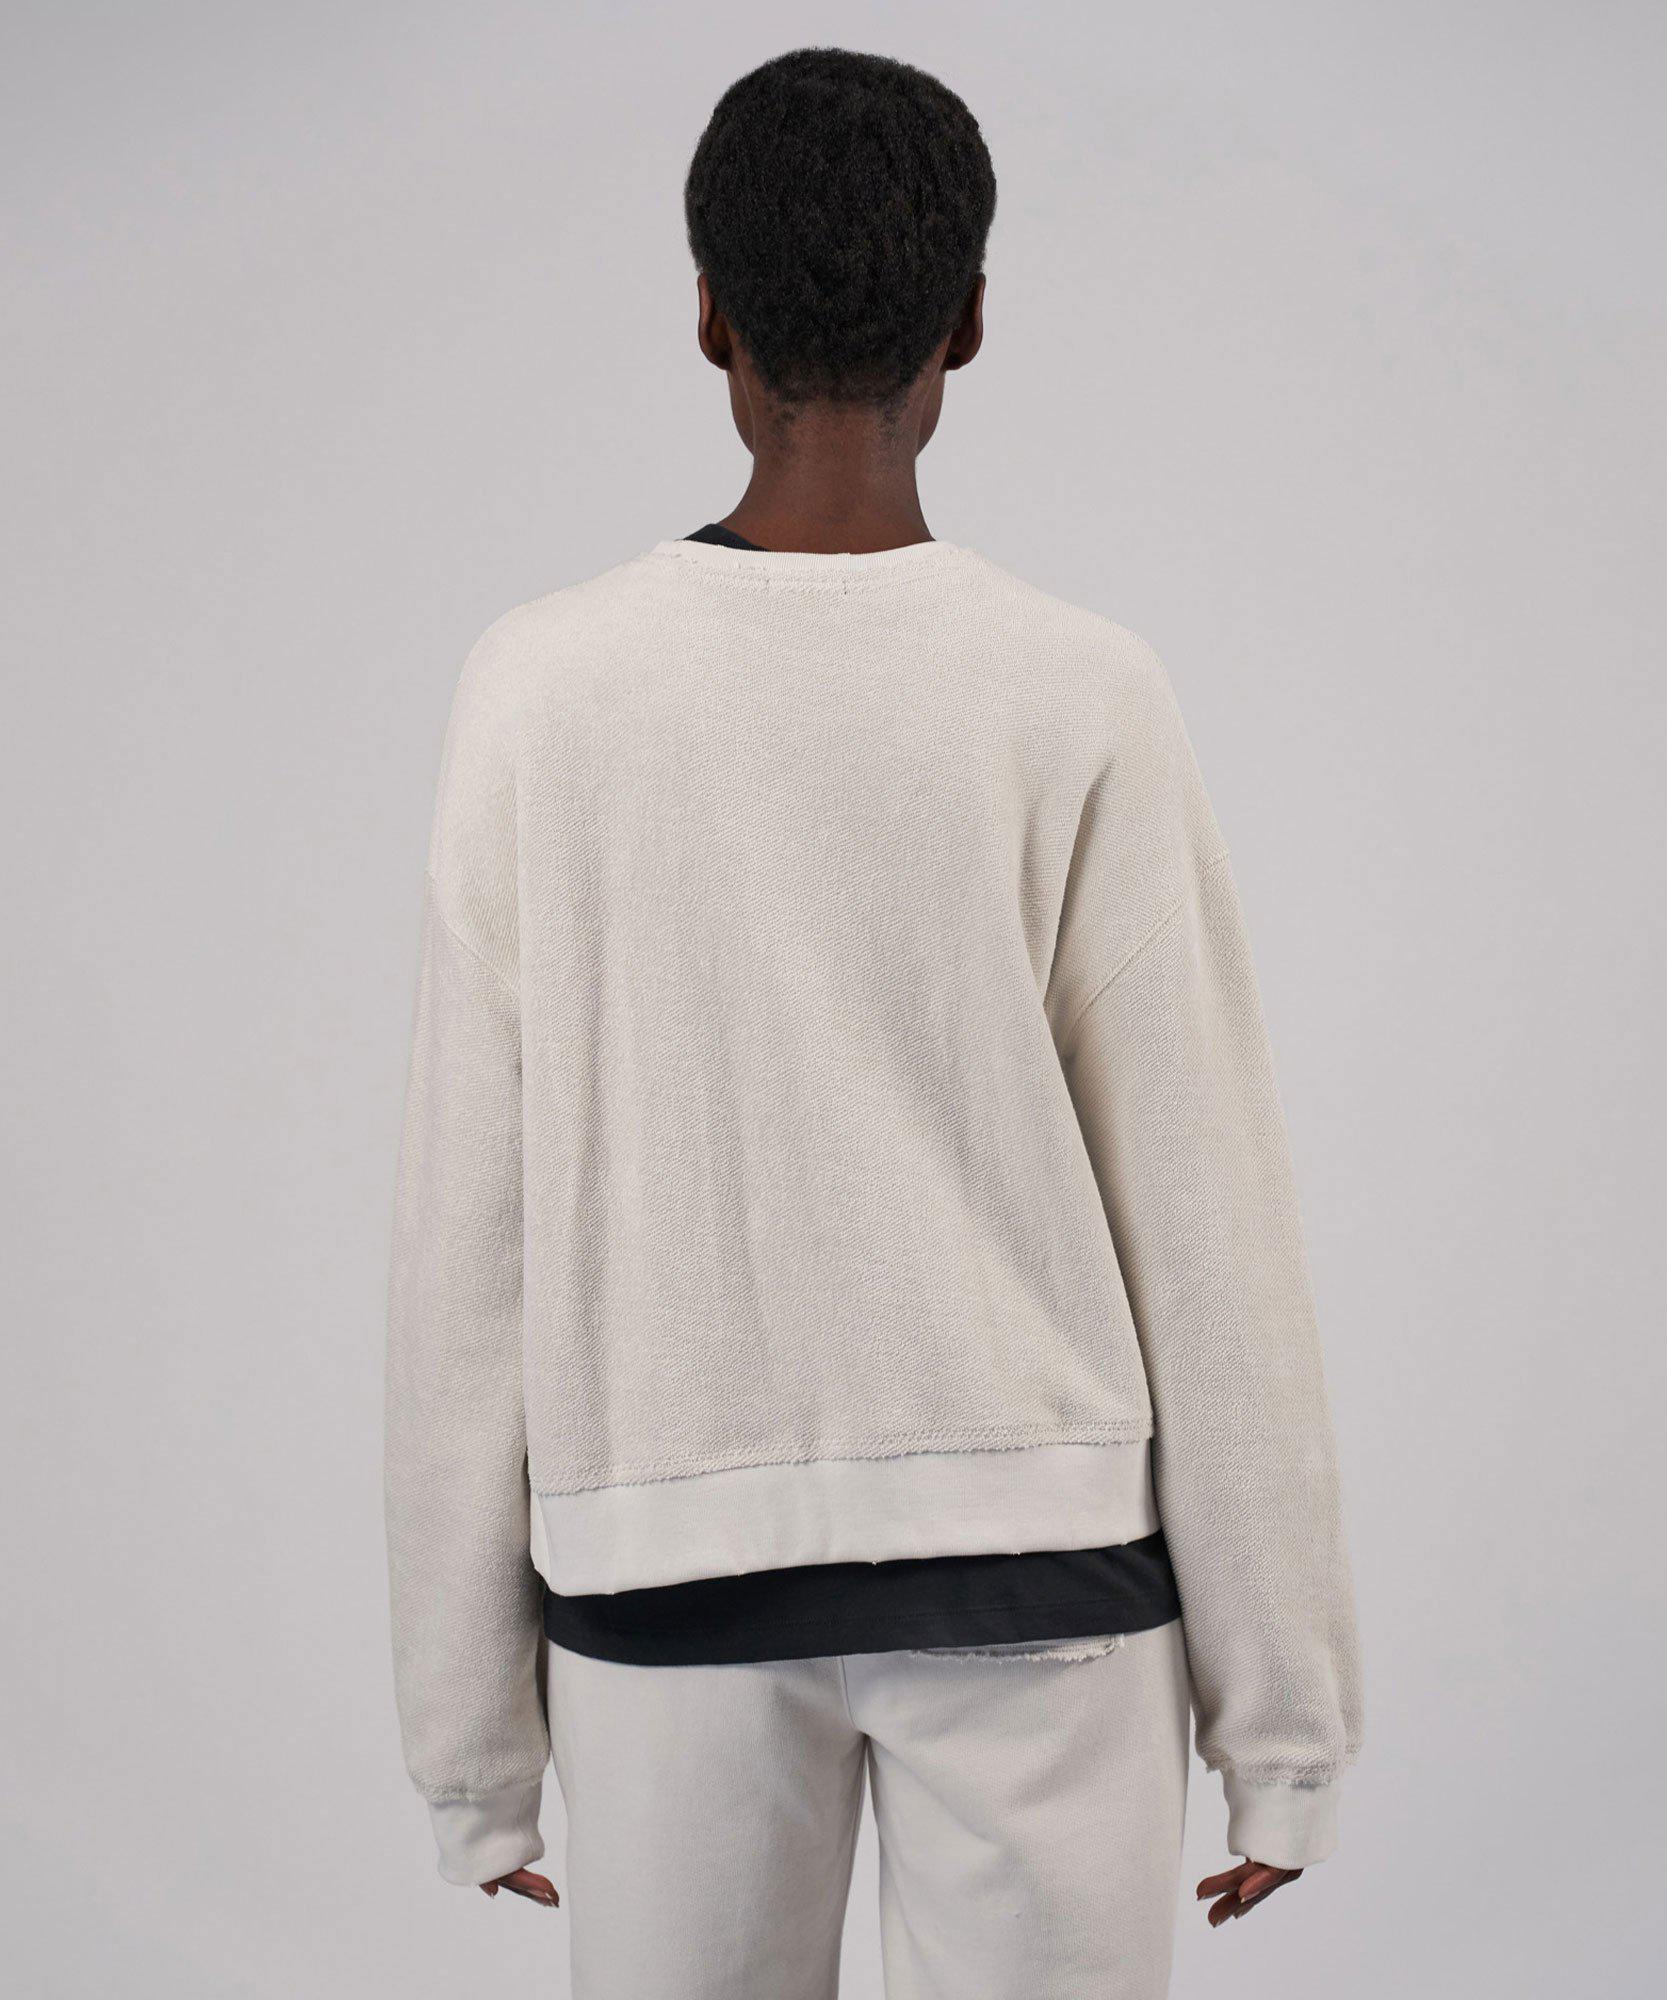 French Terry Destroyed Wash Long Sleeve Sweatshirt - Gesso 2